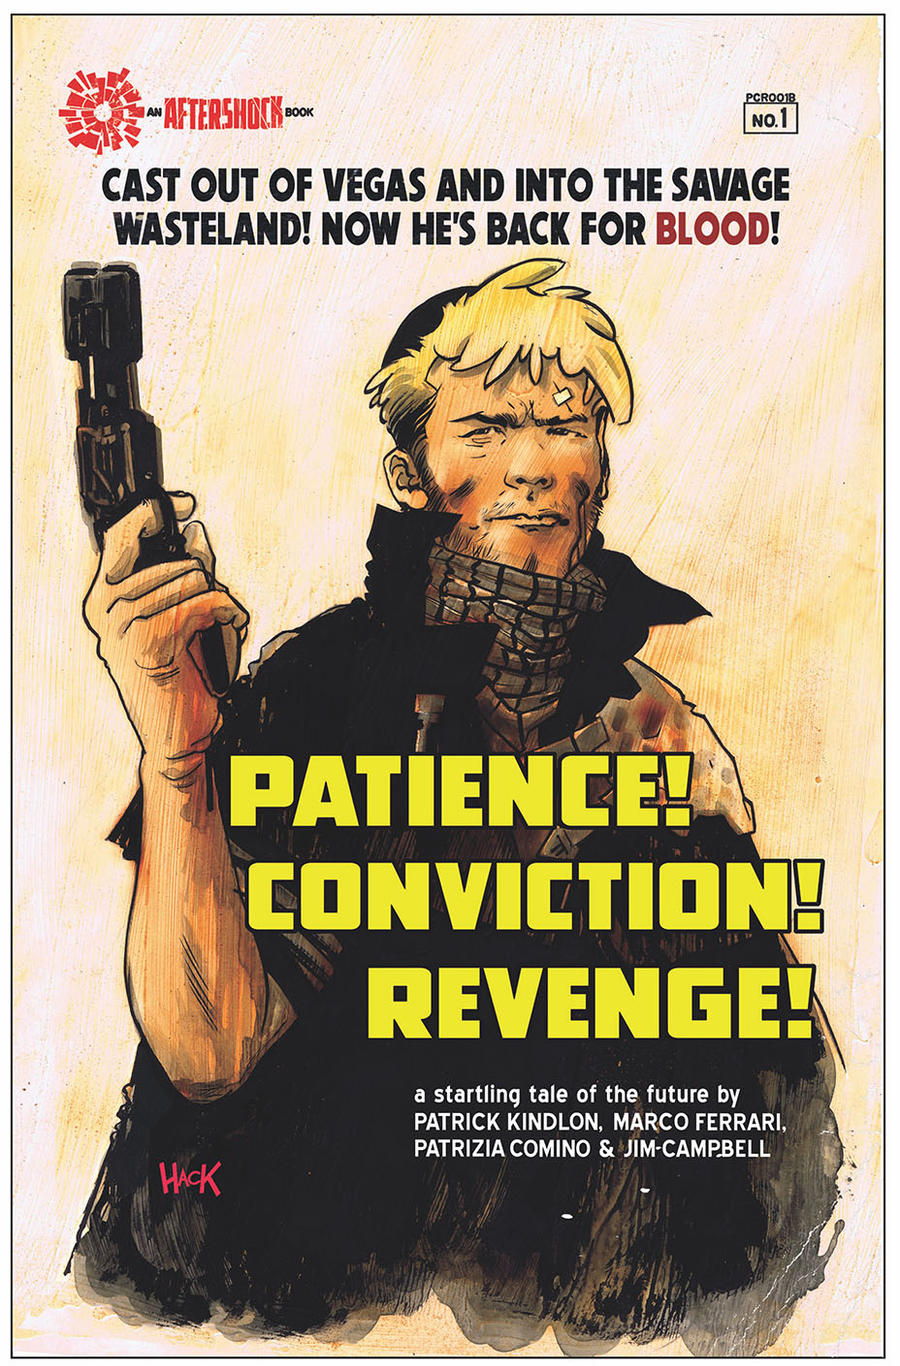 PATIENCE! CONVICTION! REVENGE! #1 Cover  by RobertHack